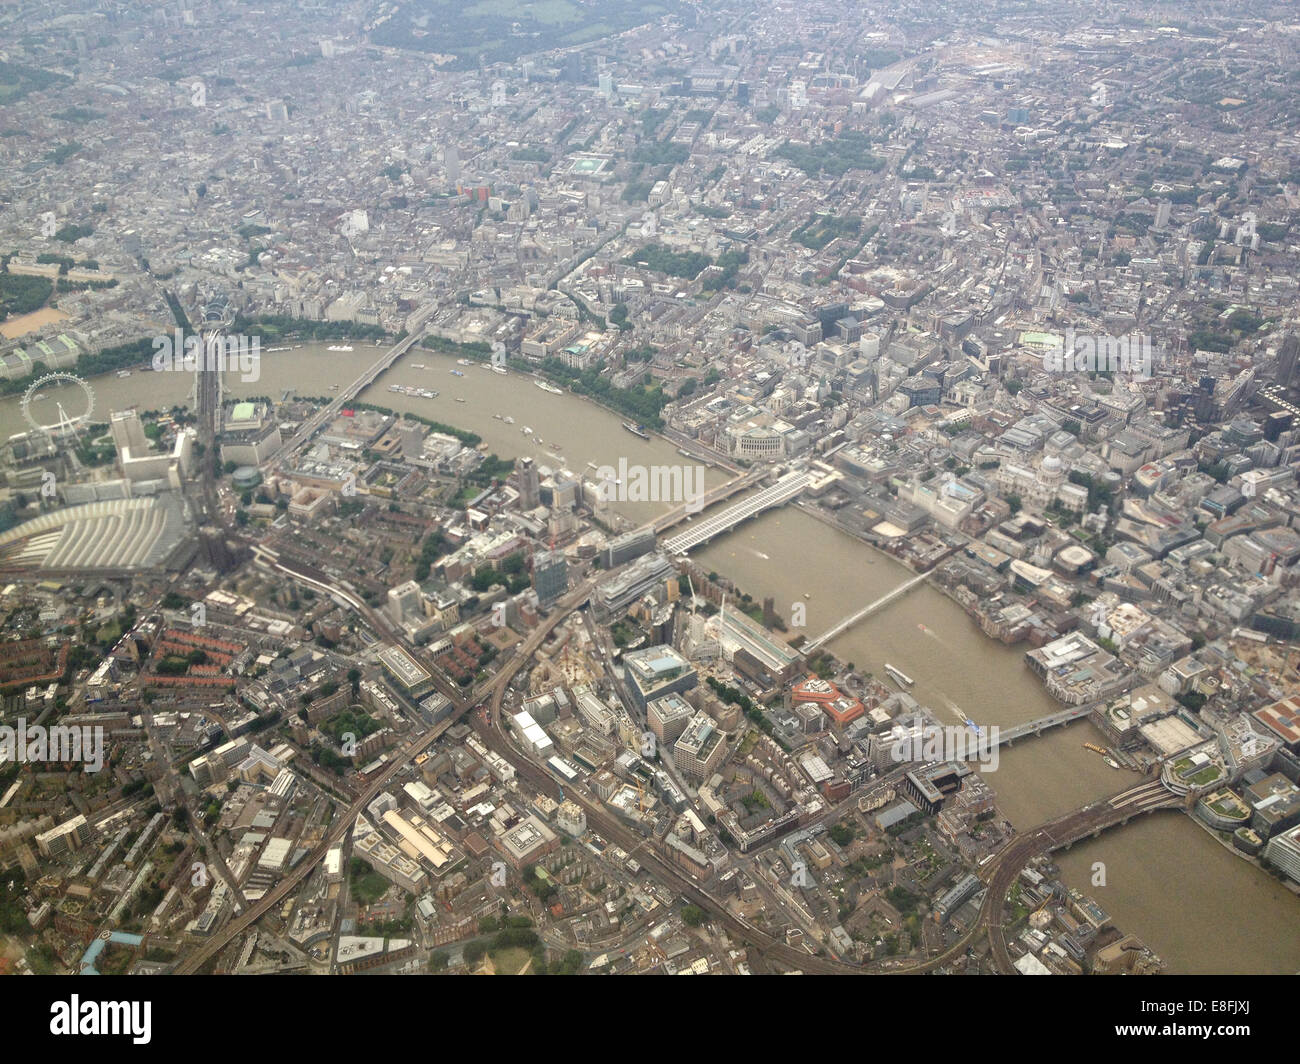 Aerial view of cityscape and river Thames, London, England, UK Stock Photo